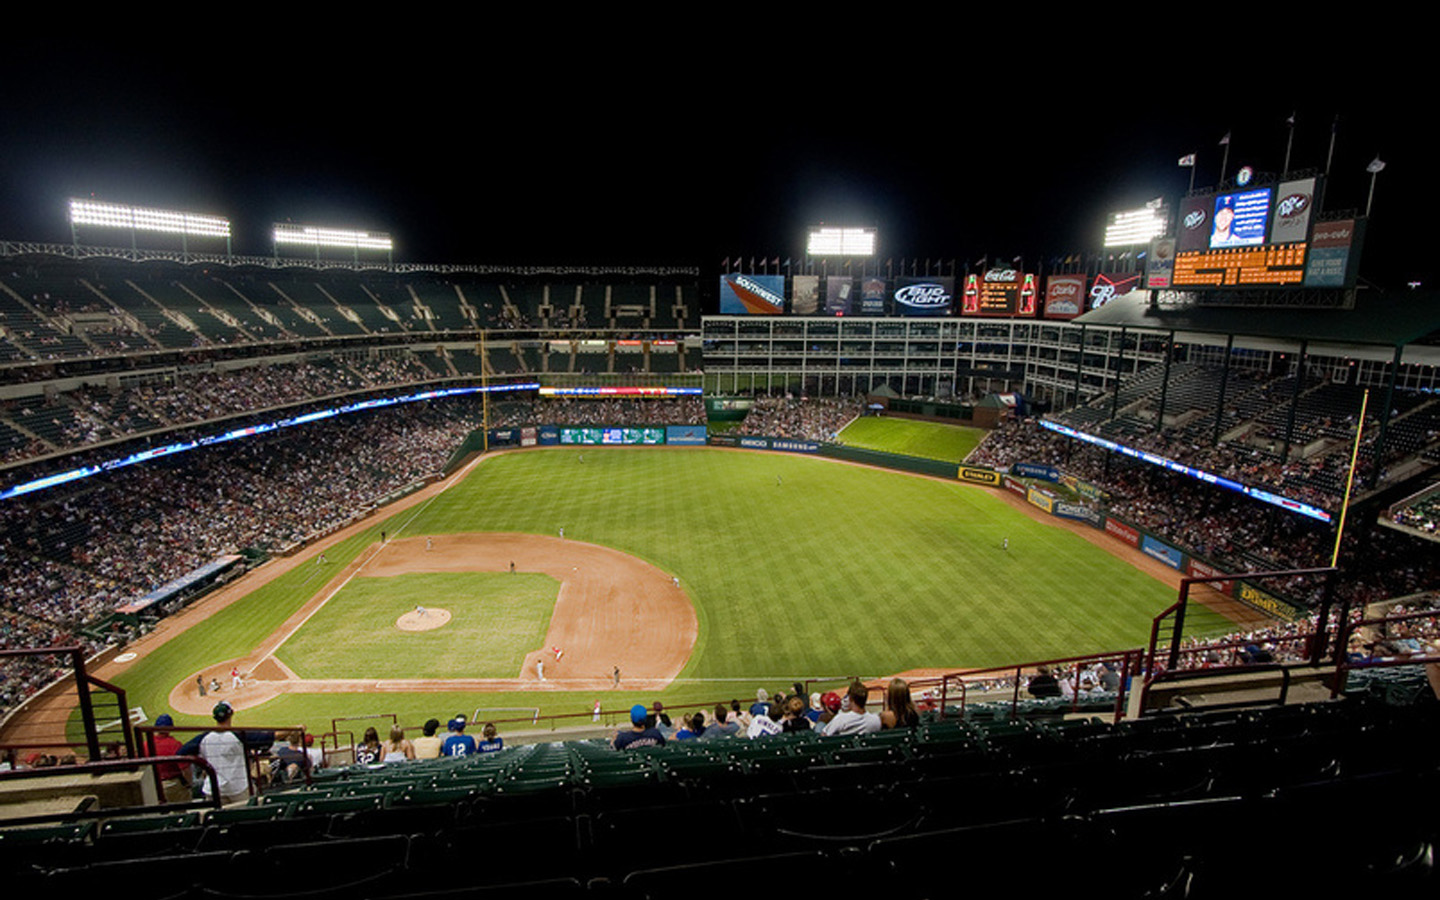 wallpaper details file name texas rangers wallpaper uploaded by 1440x900